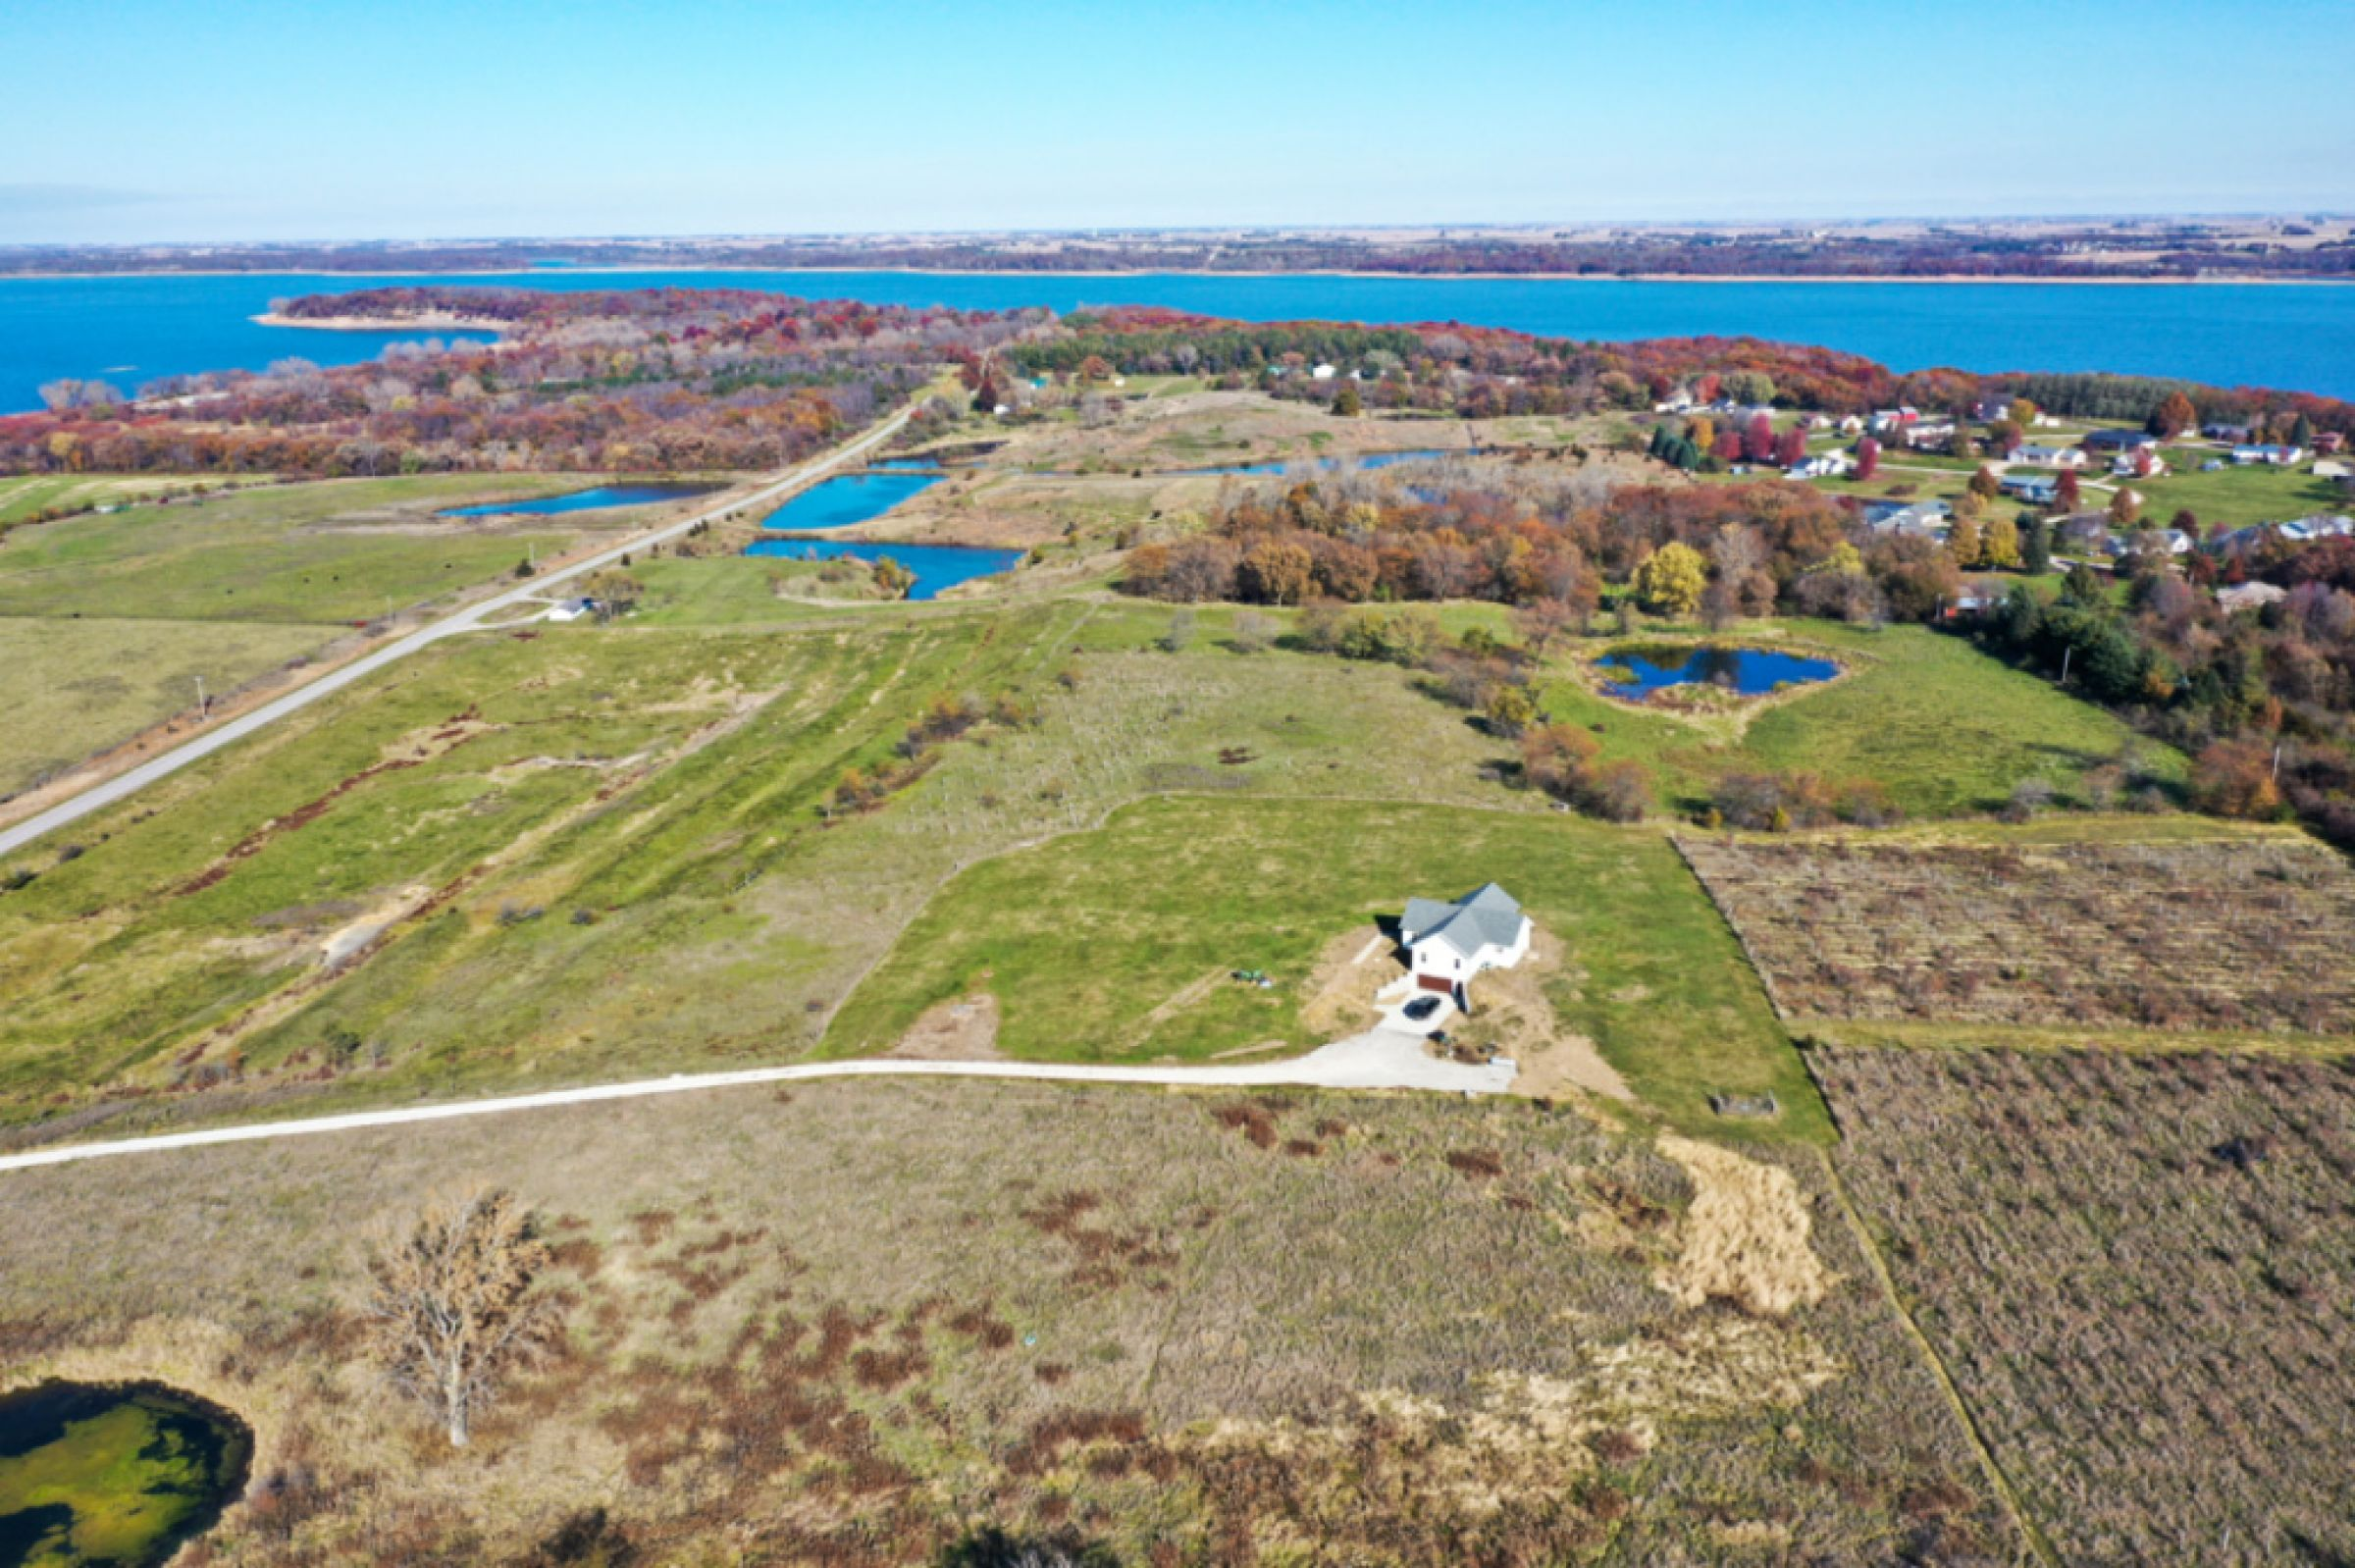 14759-Peoples Company Land for Sale-14759-highway-s71-knoxville-s71-pella-4-2019-11-05-230249.jpg